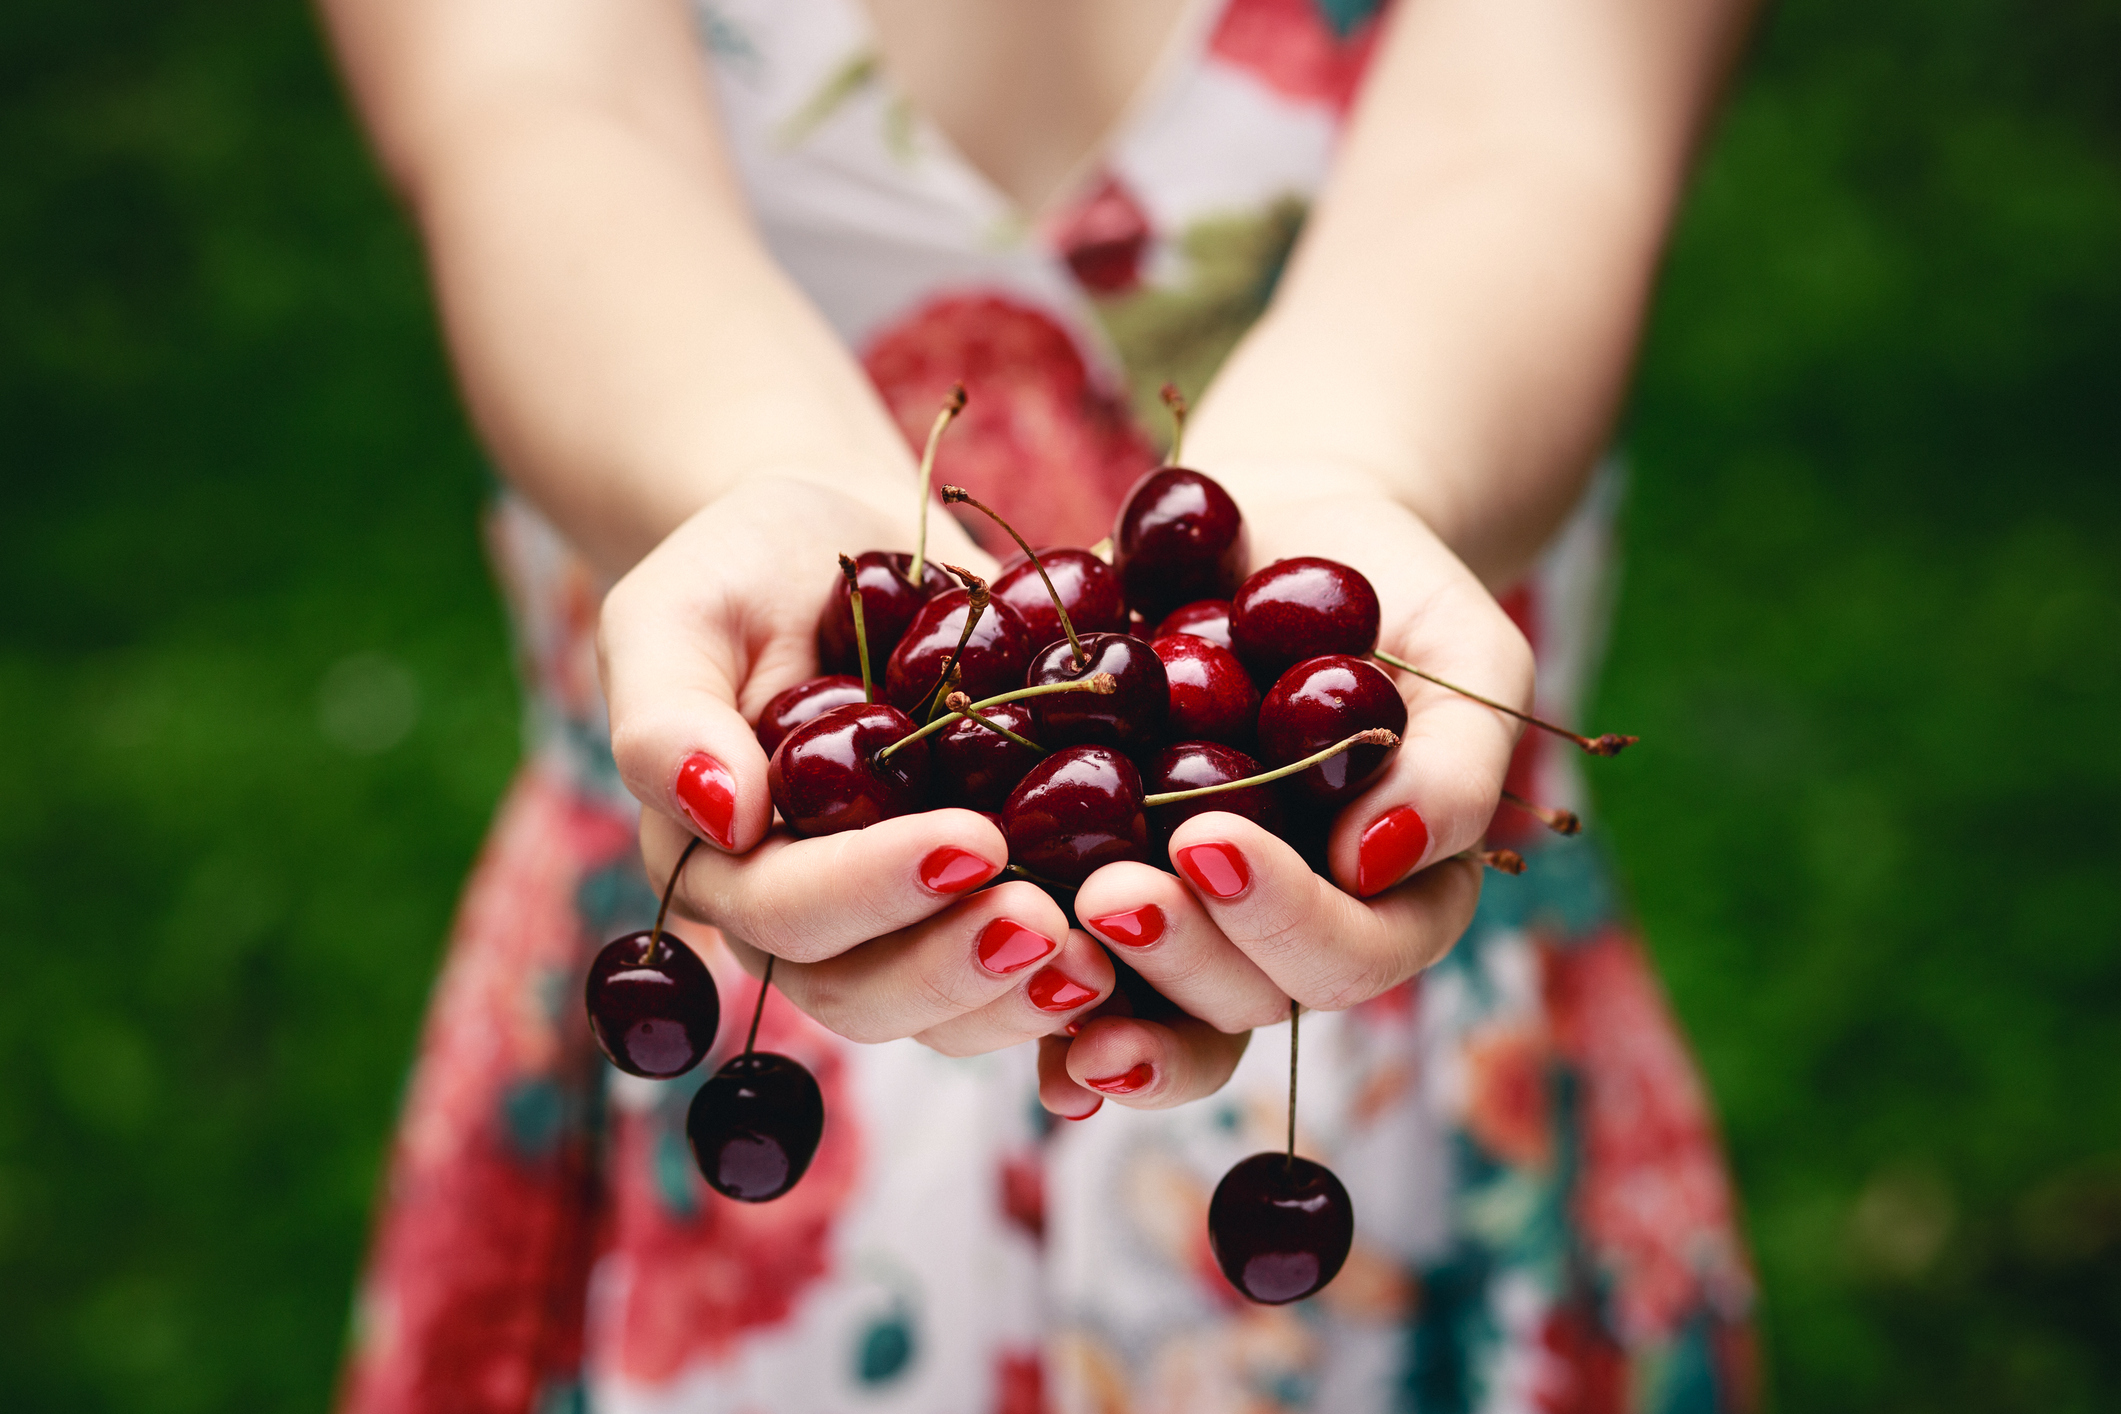 Close up of hands full of cherries.